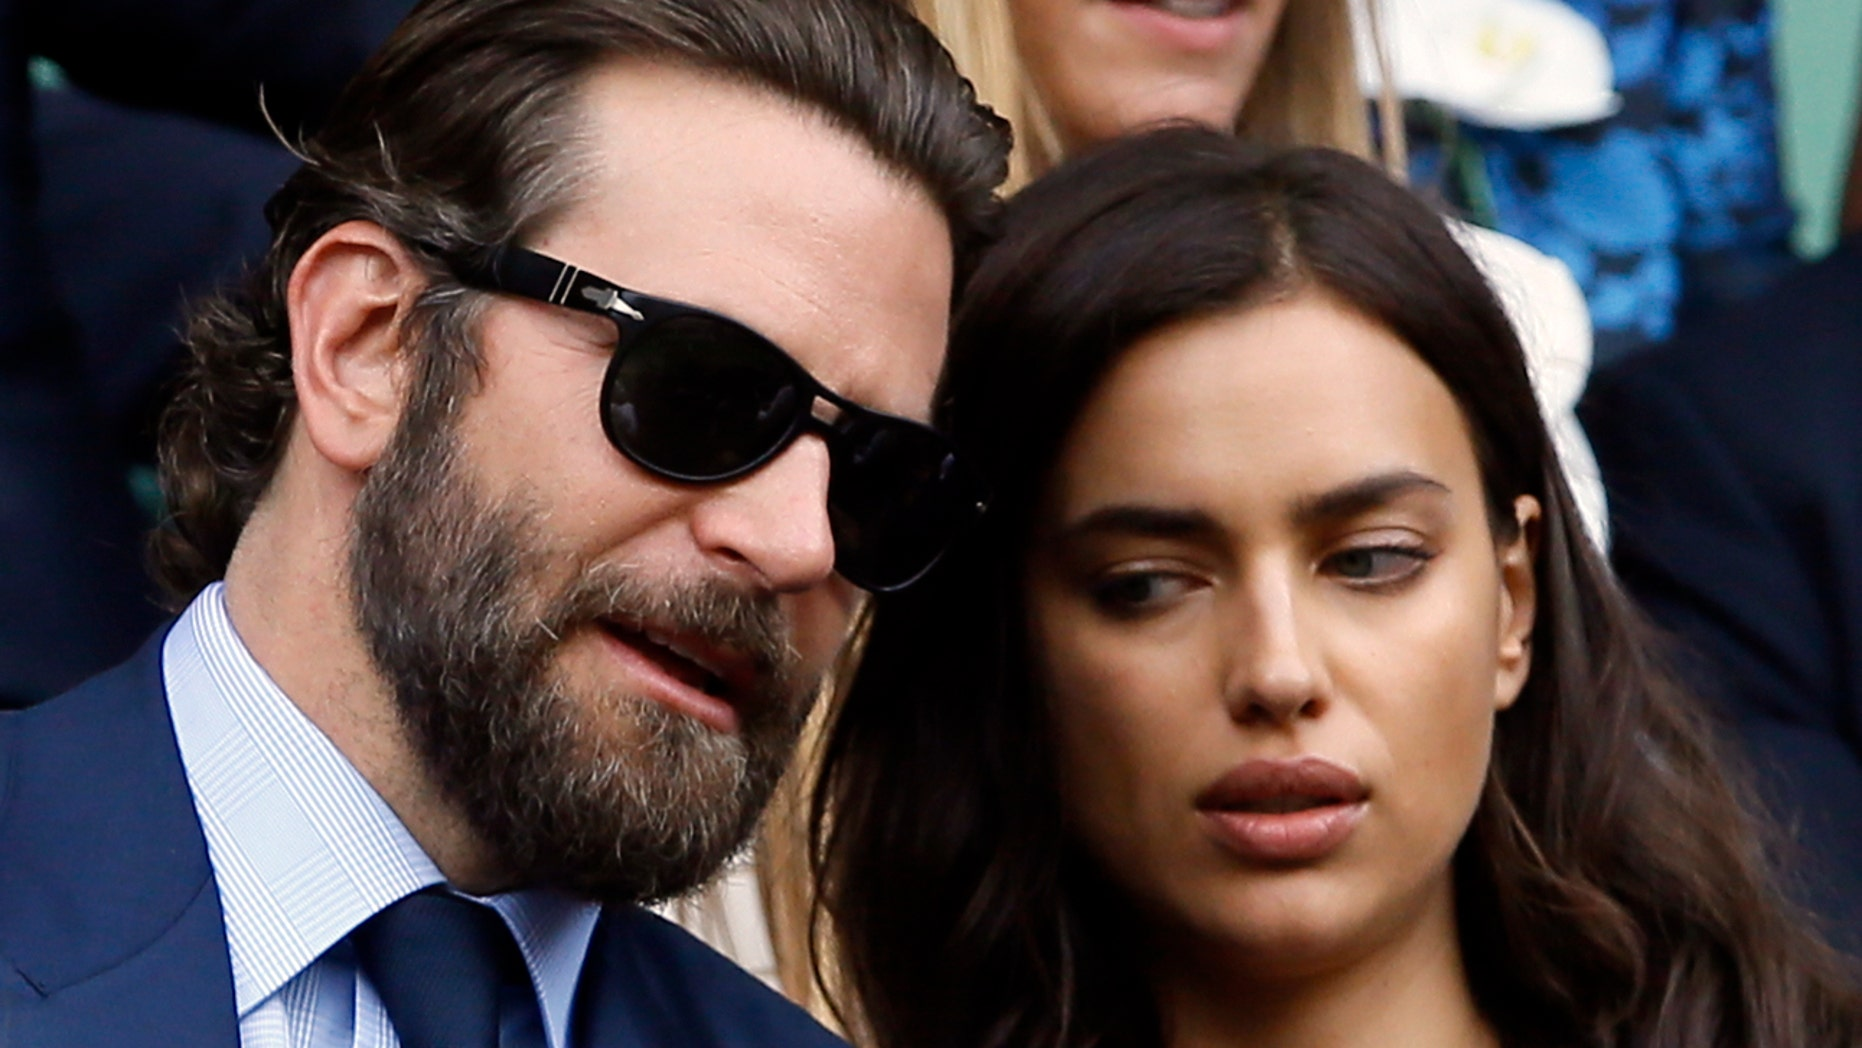 Actor Bradley Cooper, left, speaks with his girlfriend model Irina Shayk on the fourteenth day of the Wimbledon Tennis Championships in London, Sunday, July 10, 2016.